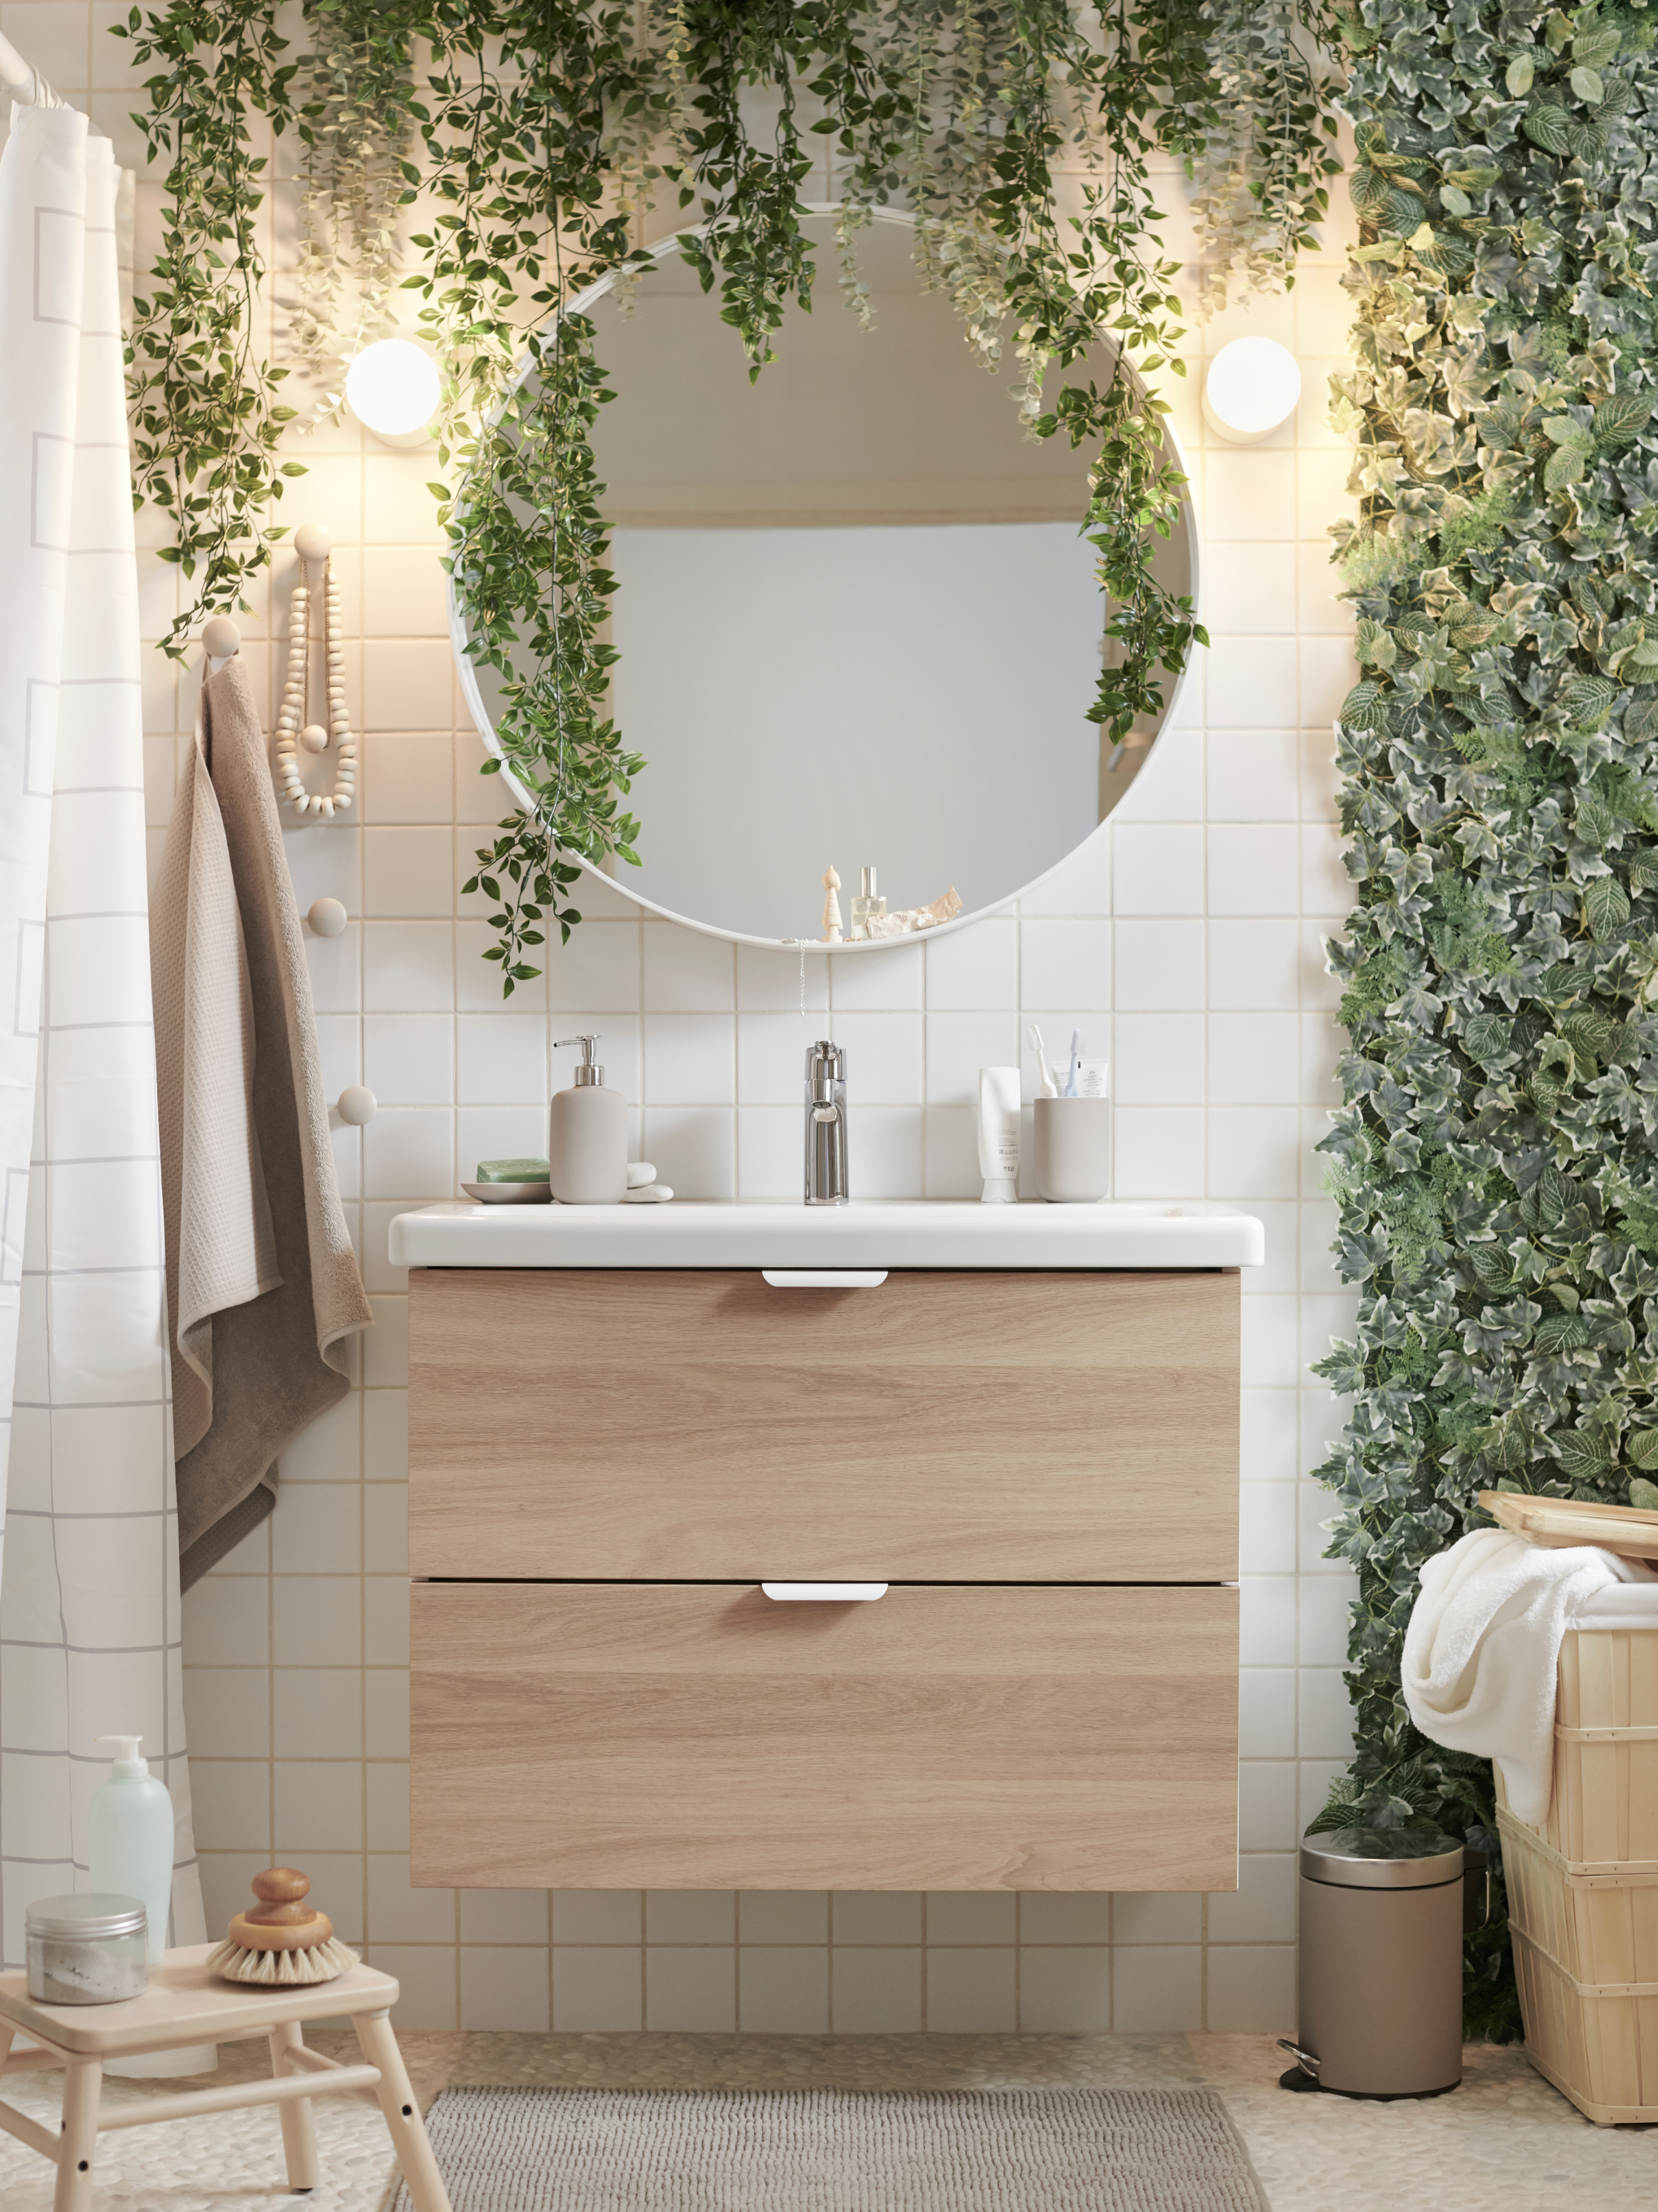 A bathroom decorated with FEJKA artificial plants, an ENHET/TVÄLLEN wash-stand with wooden drawer fronts and a round mirror.